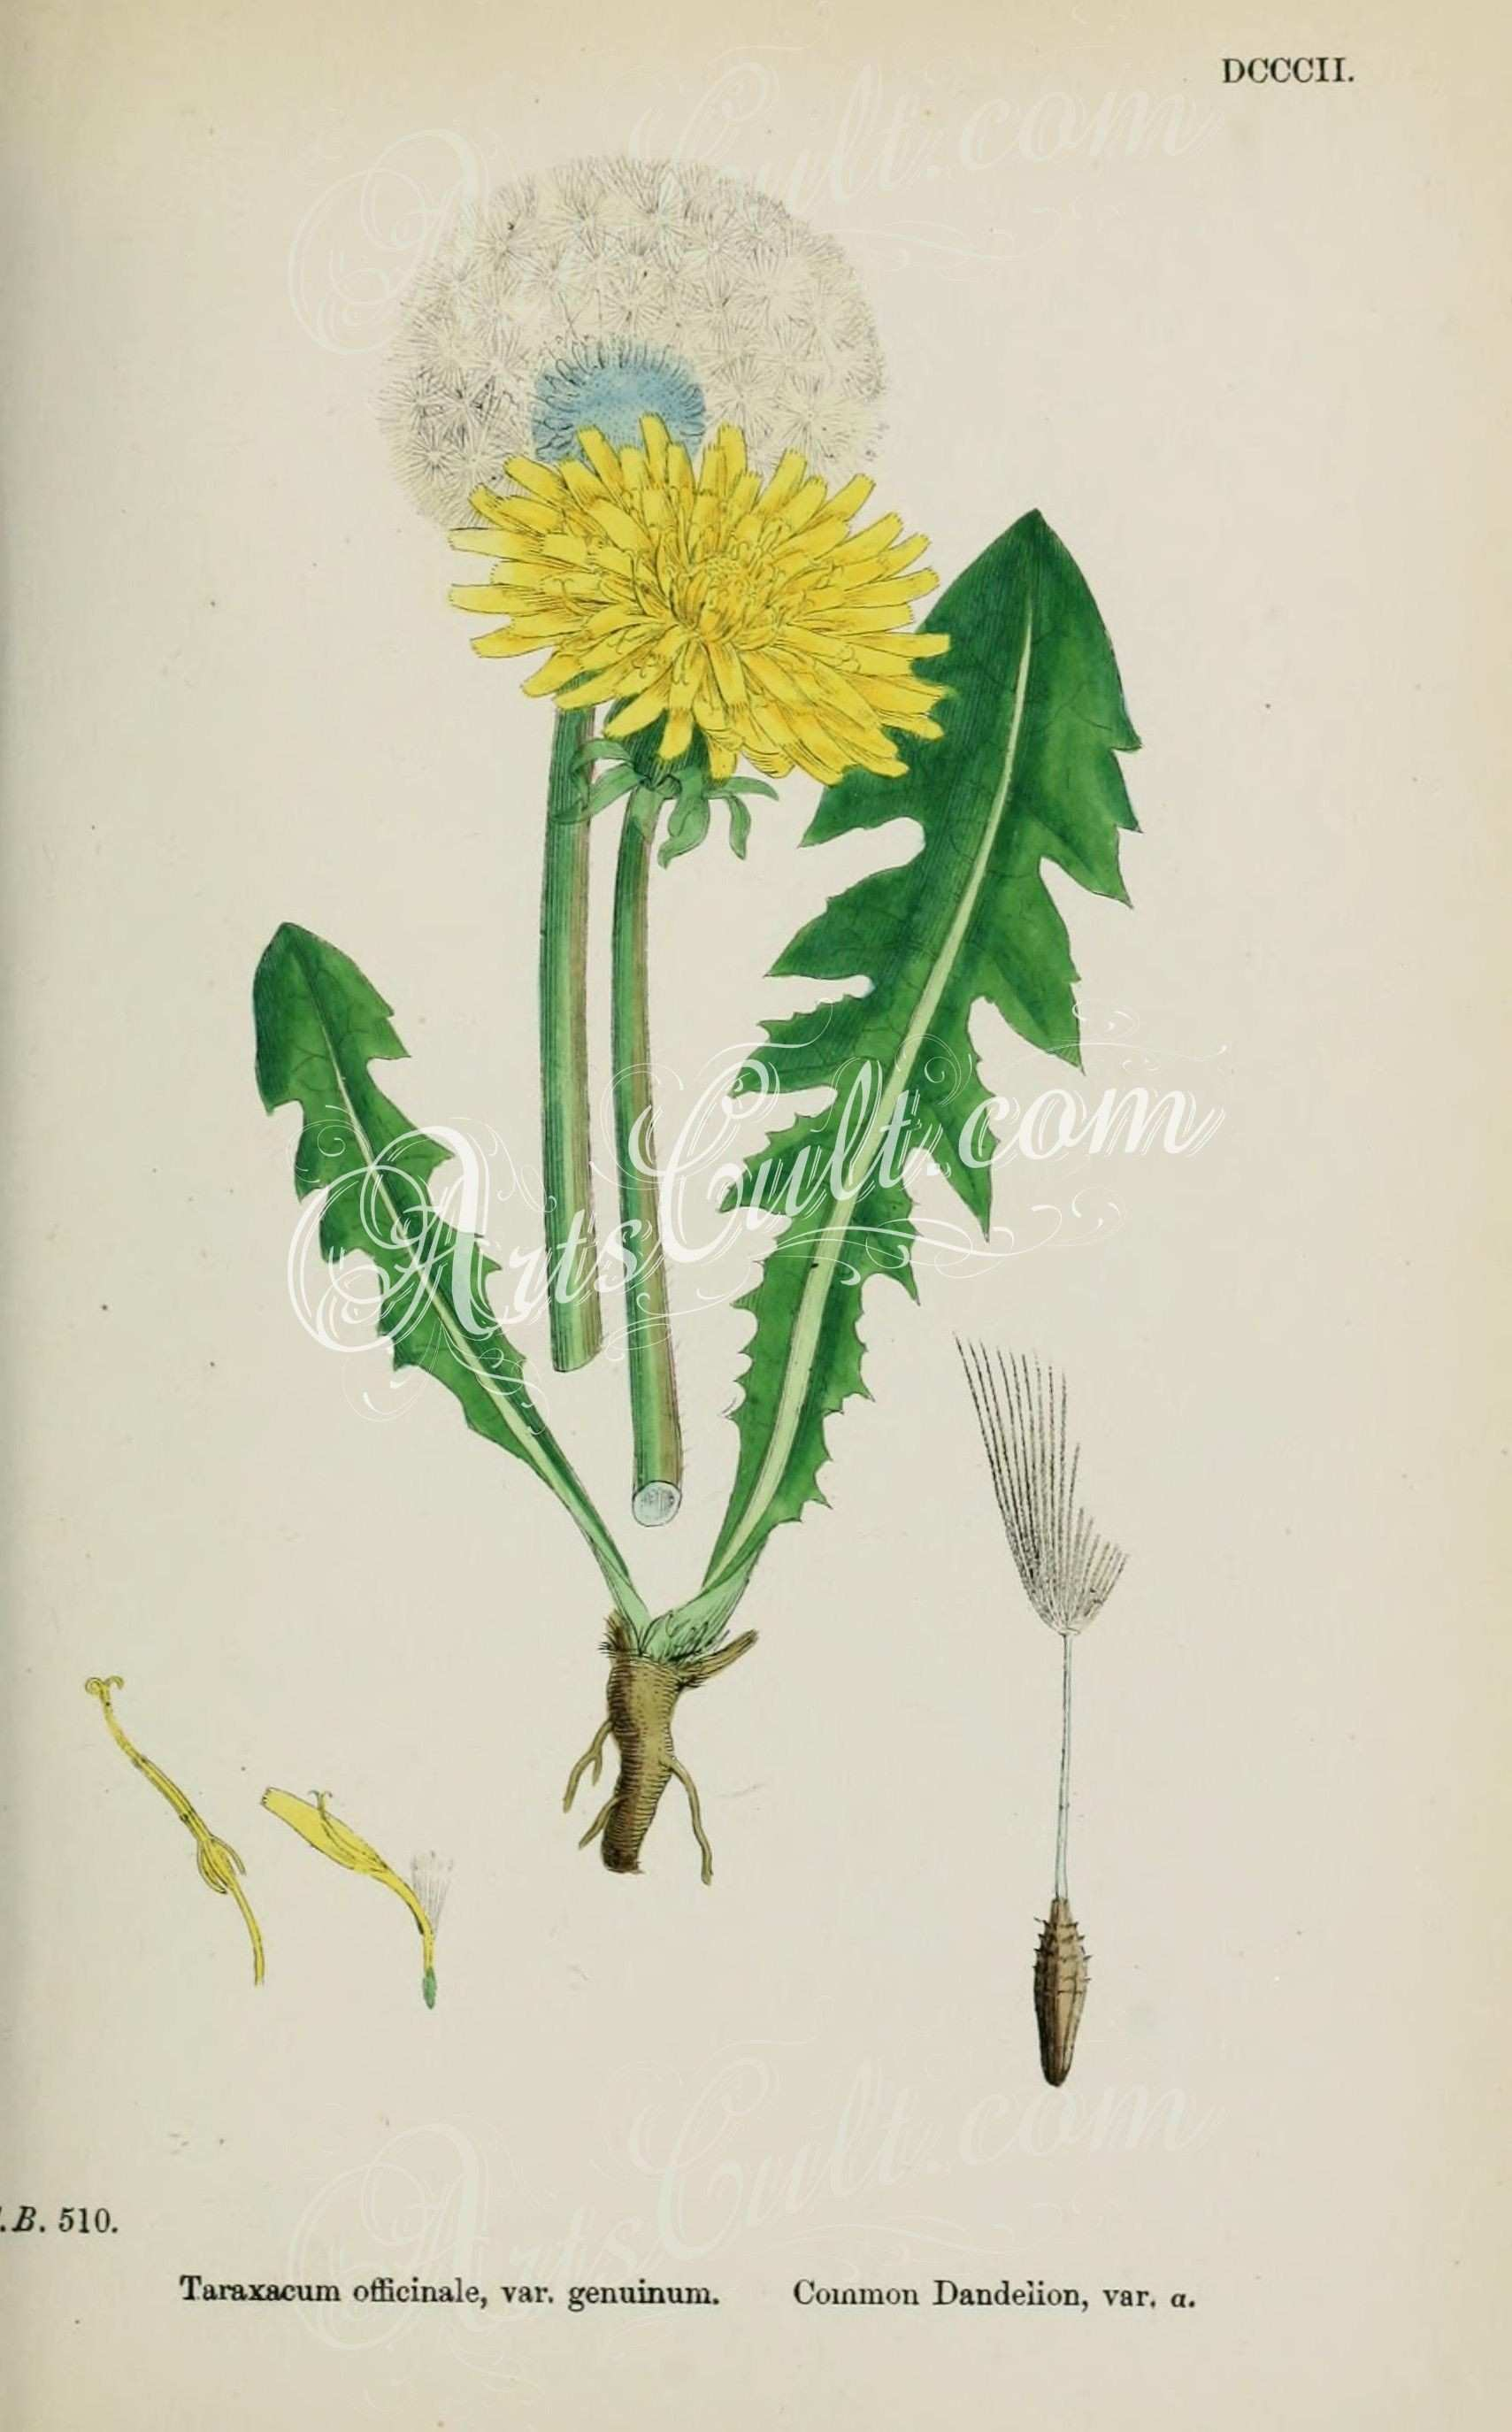 mon Dandelion taraxacum officinale genuinum